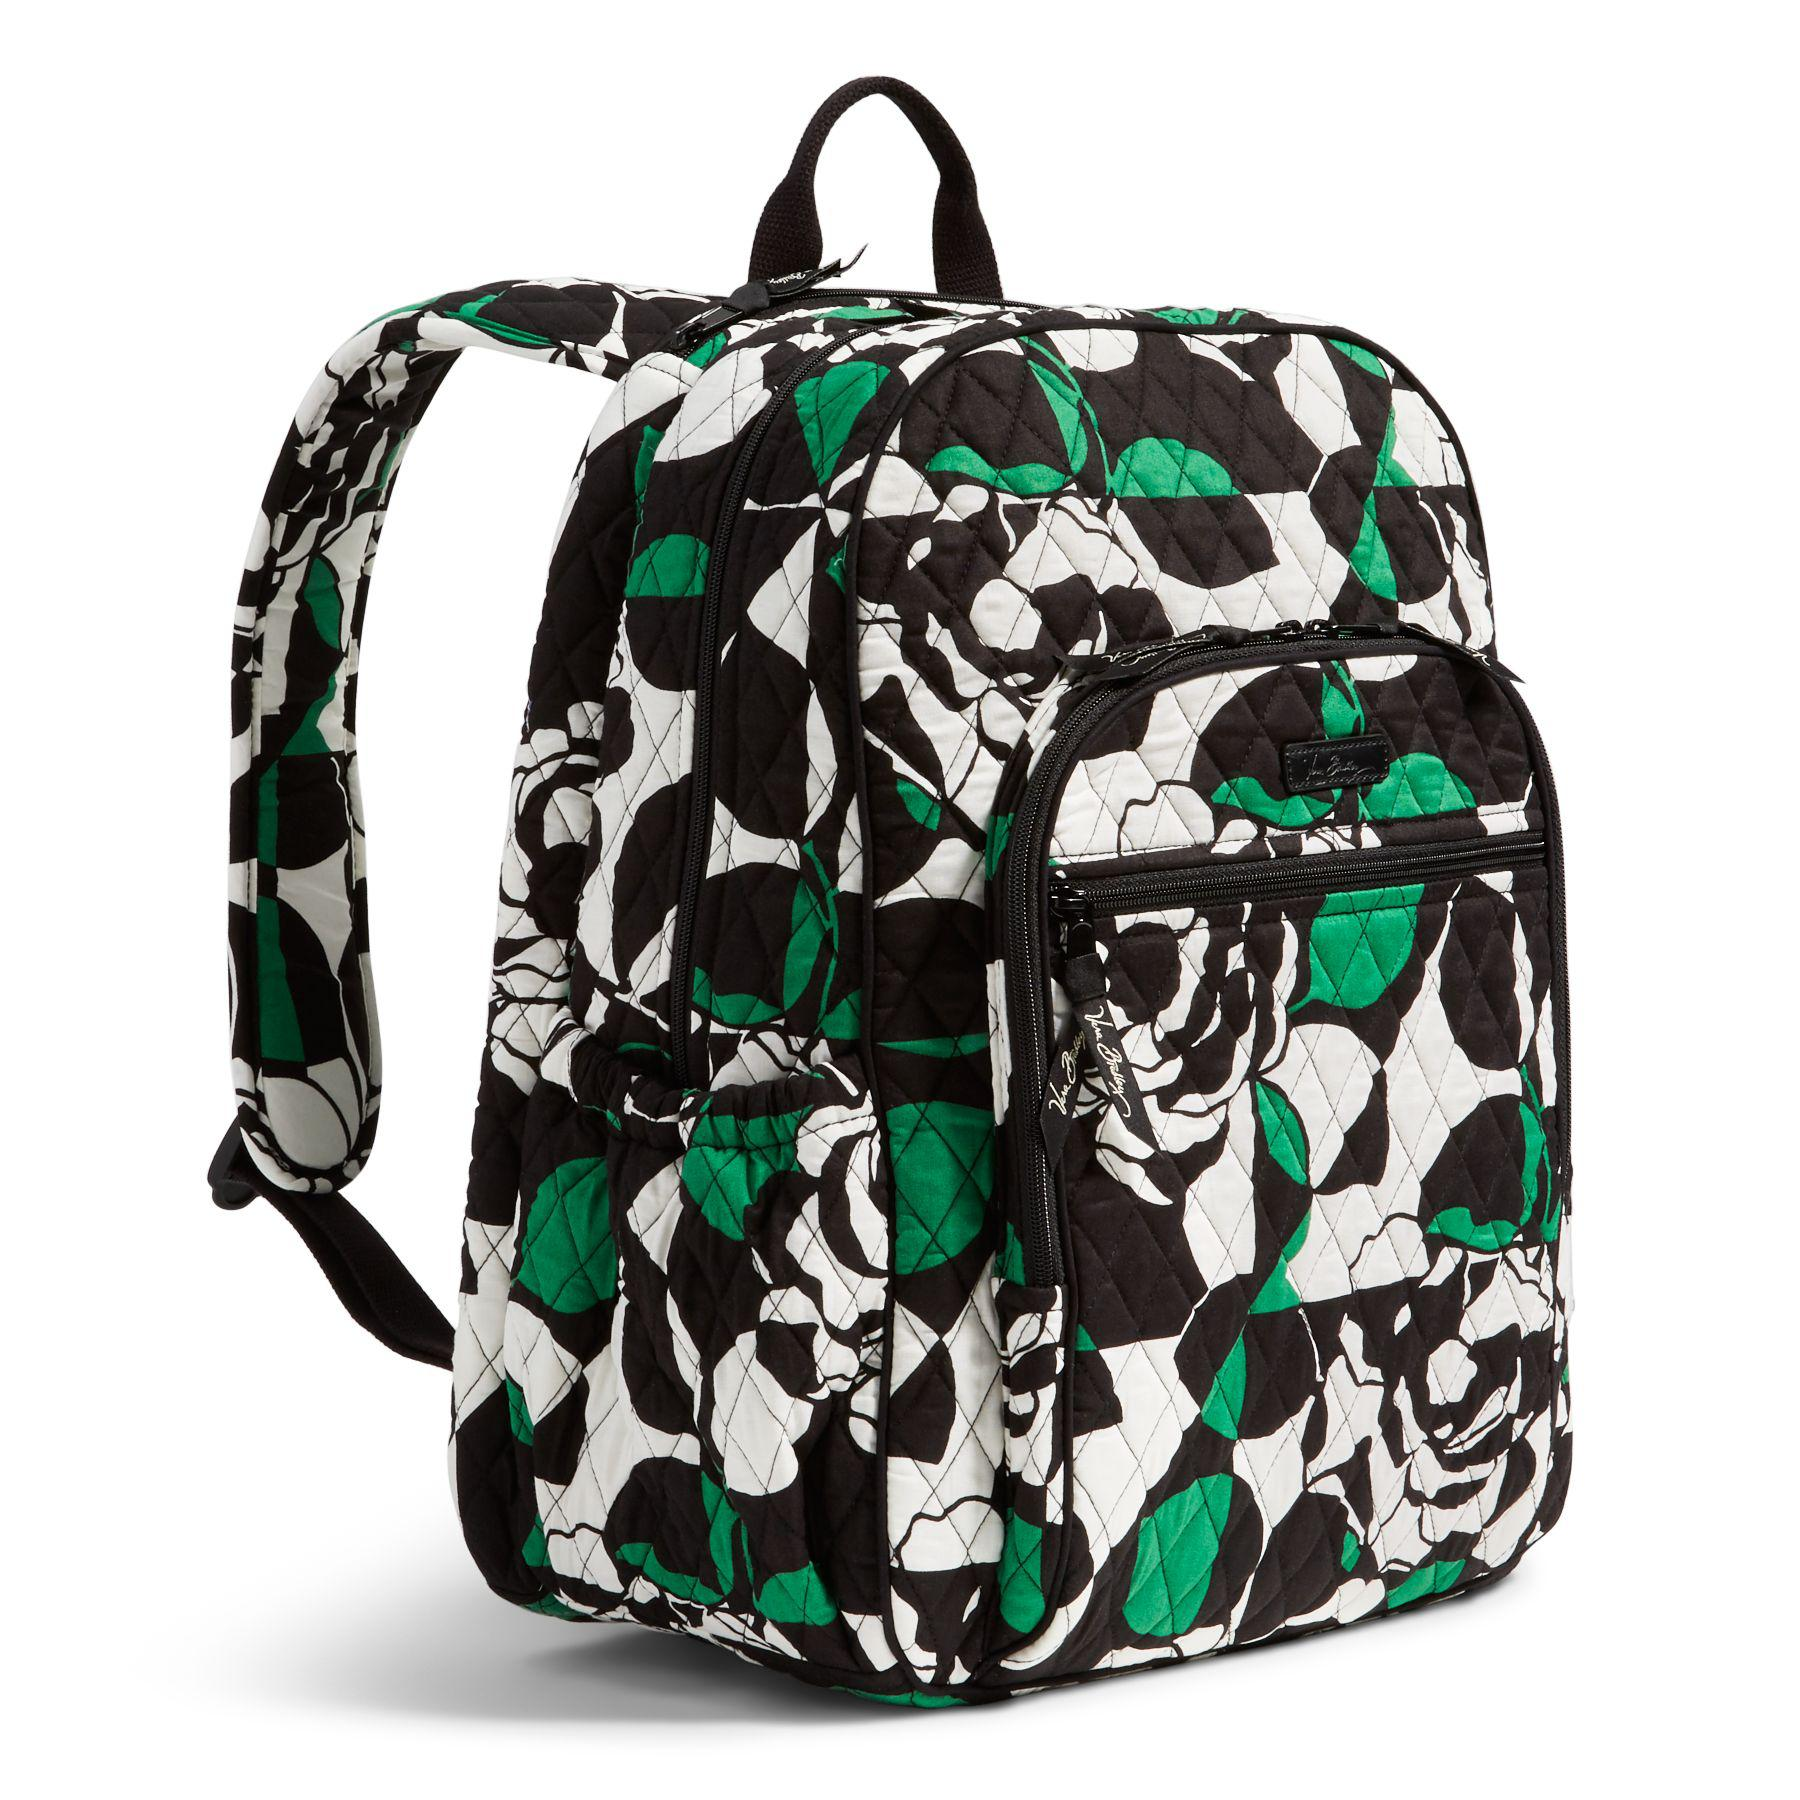 b8731f7d4d2d Lyst - Vera Bradley Campus Laptop Backpack in Green